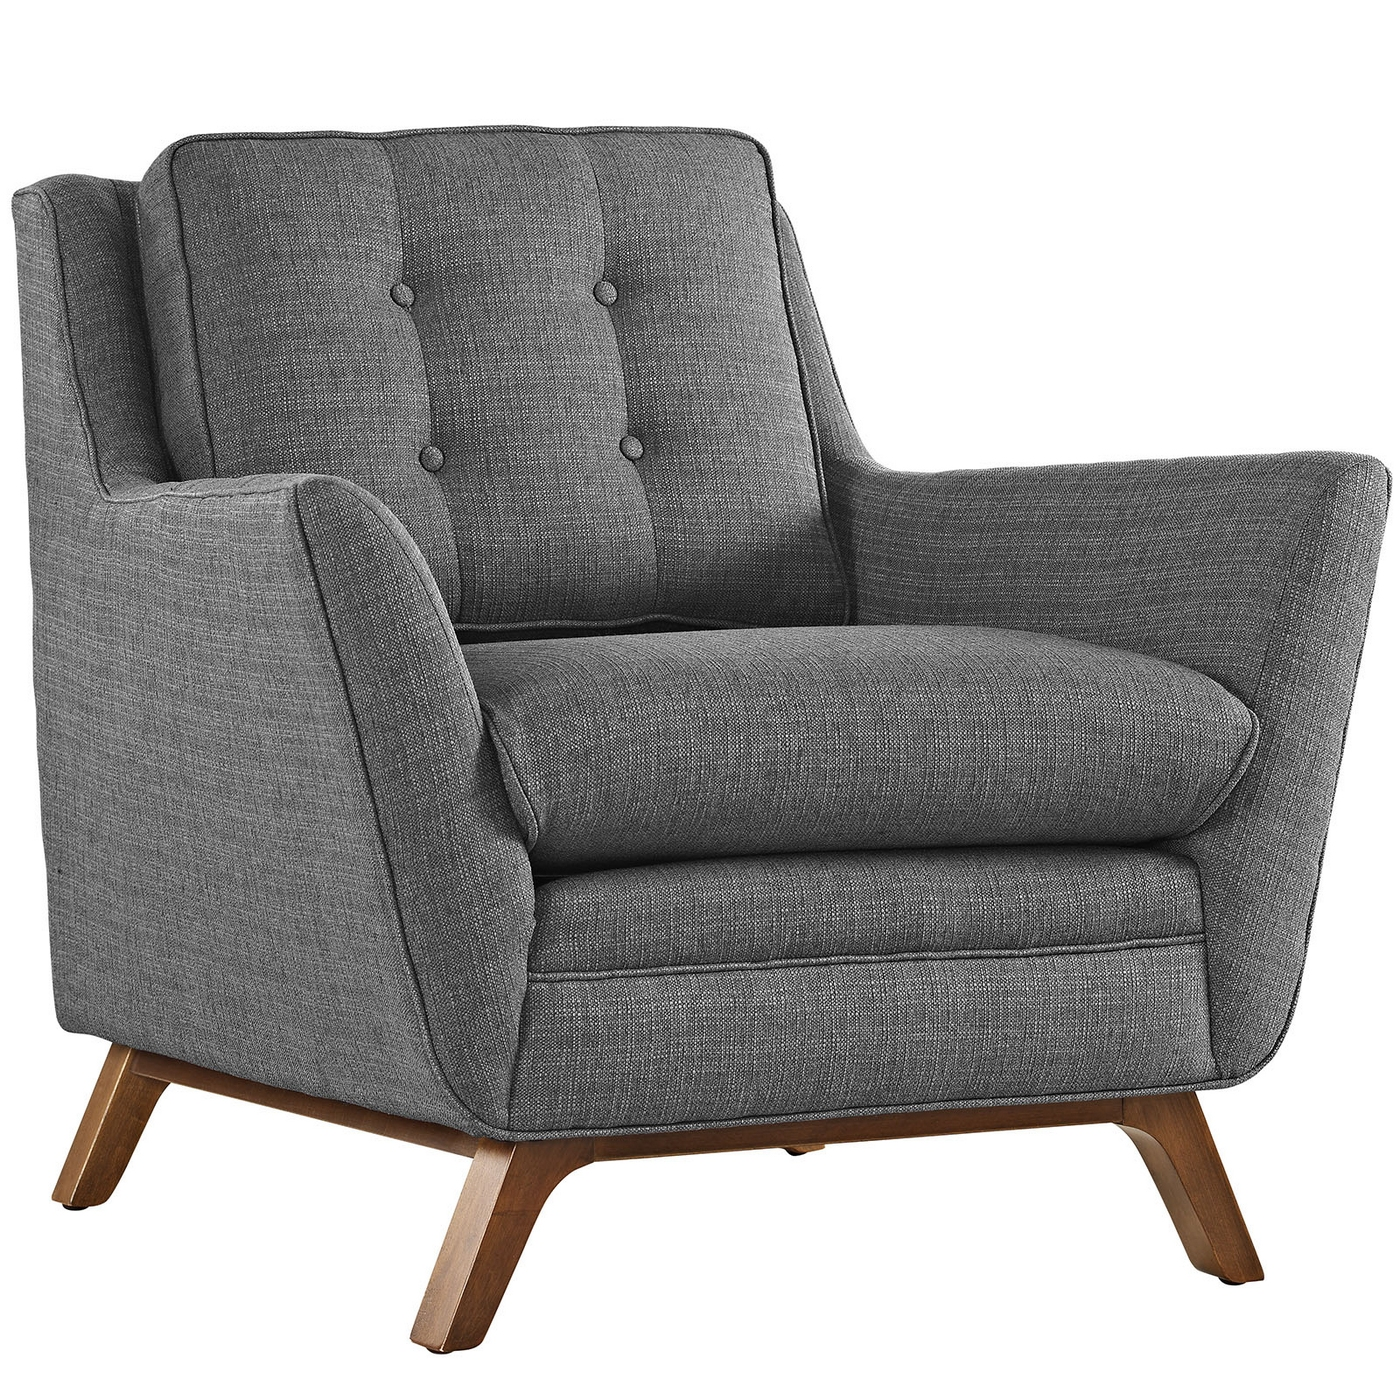 Mid Century Modern Armchairs: Mid-Century Modern Beguile Contemporary Button-Tufted